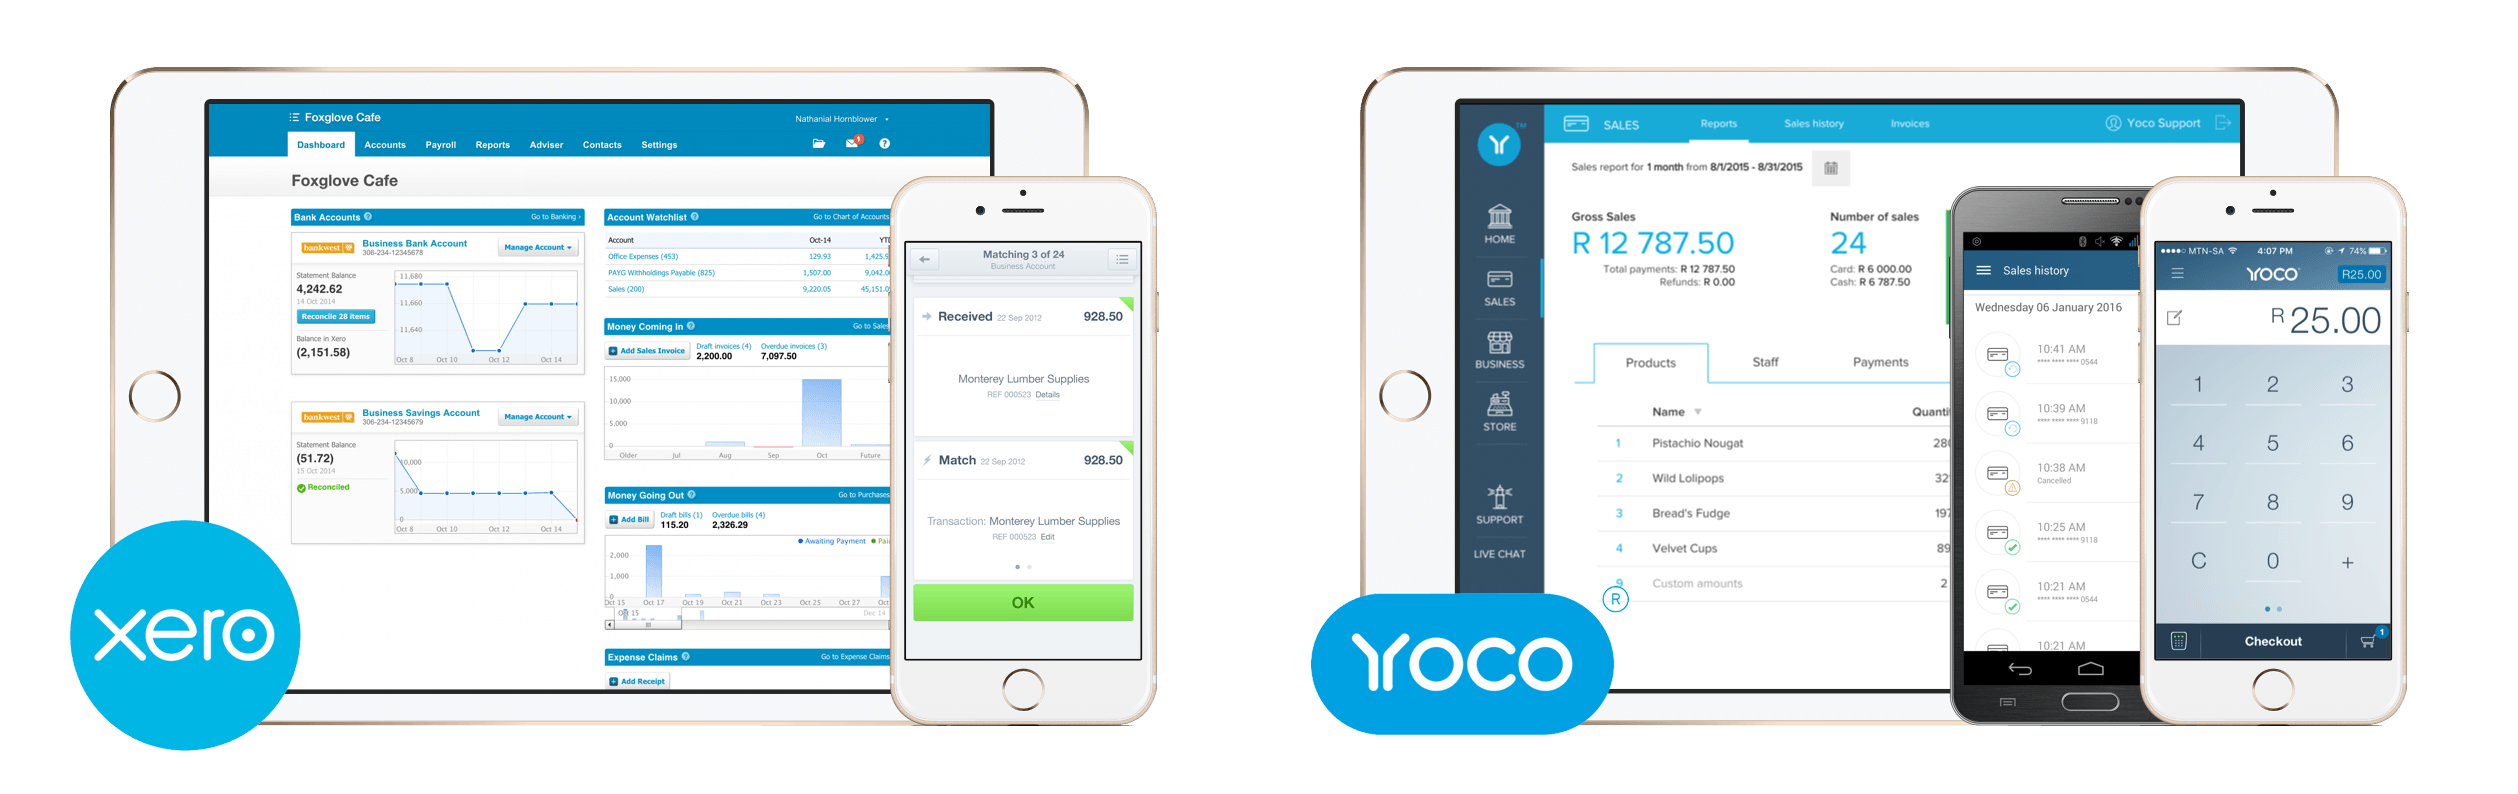 Xero and Yoco Integration